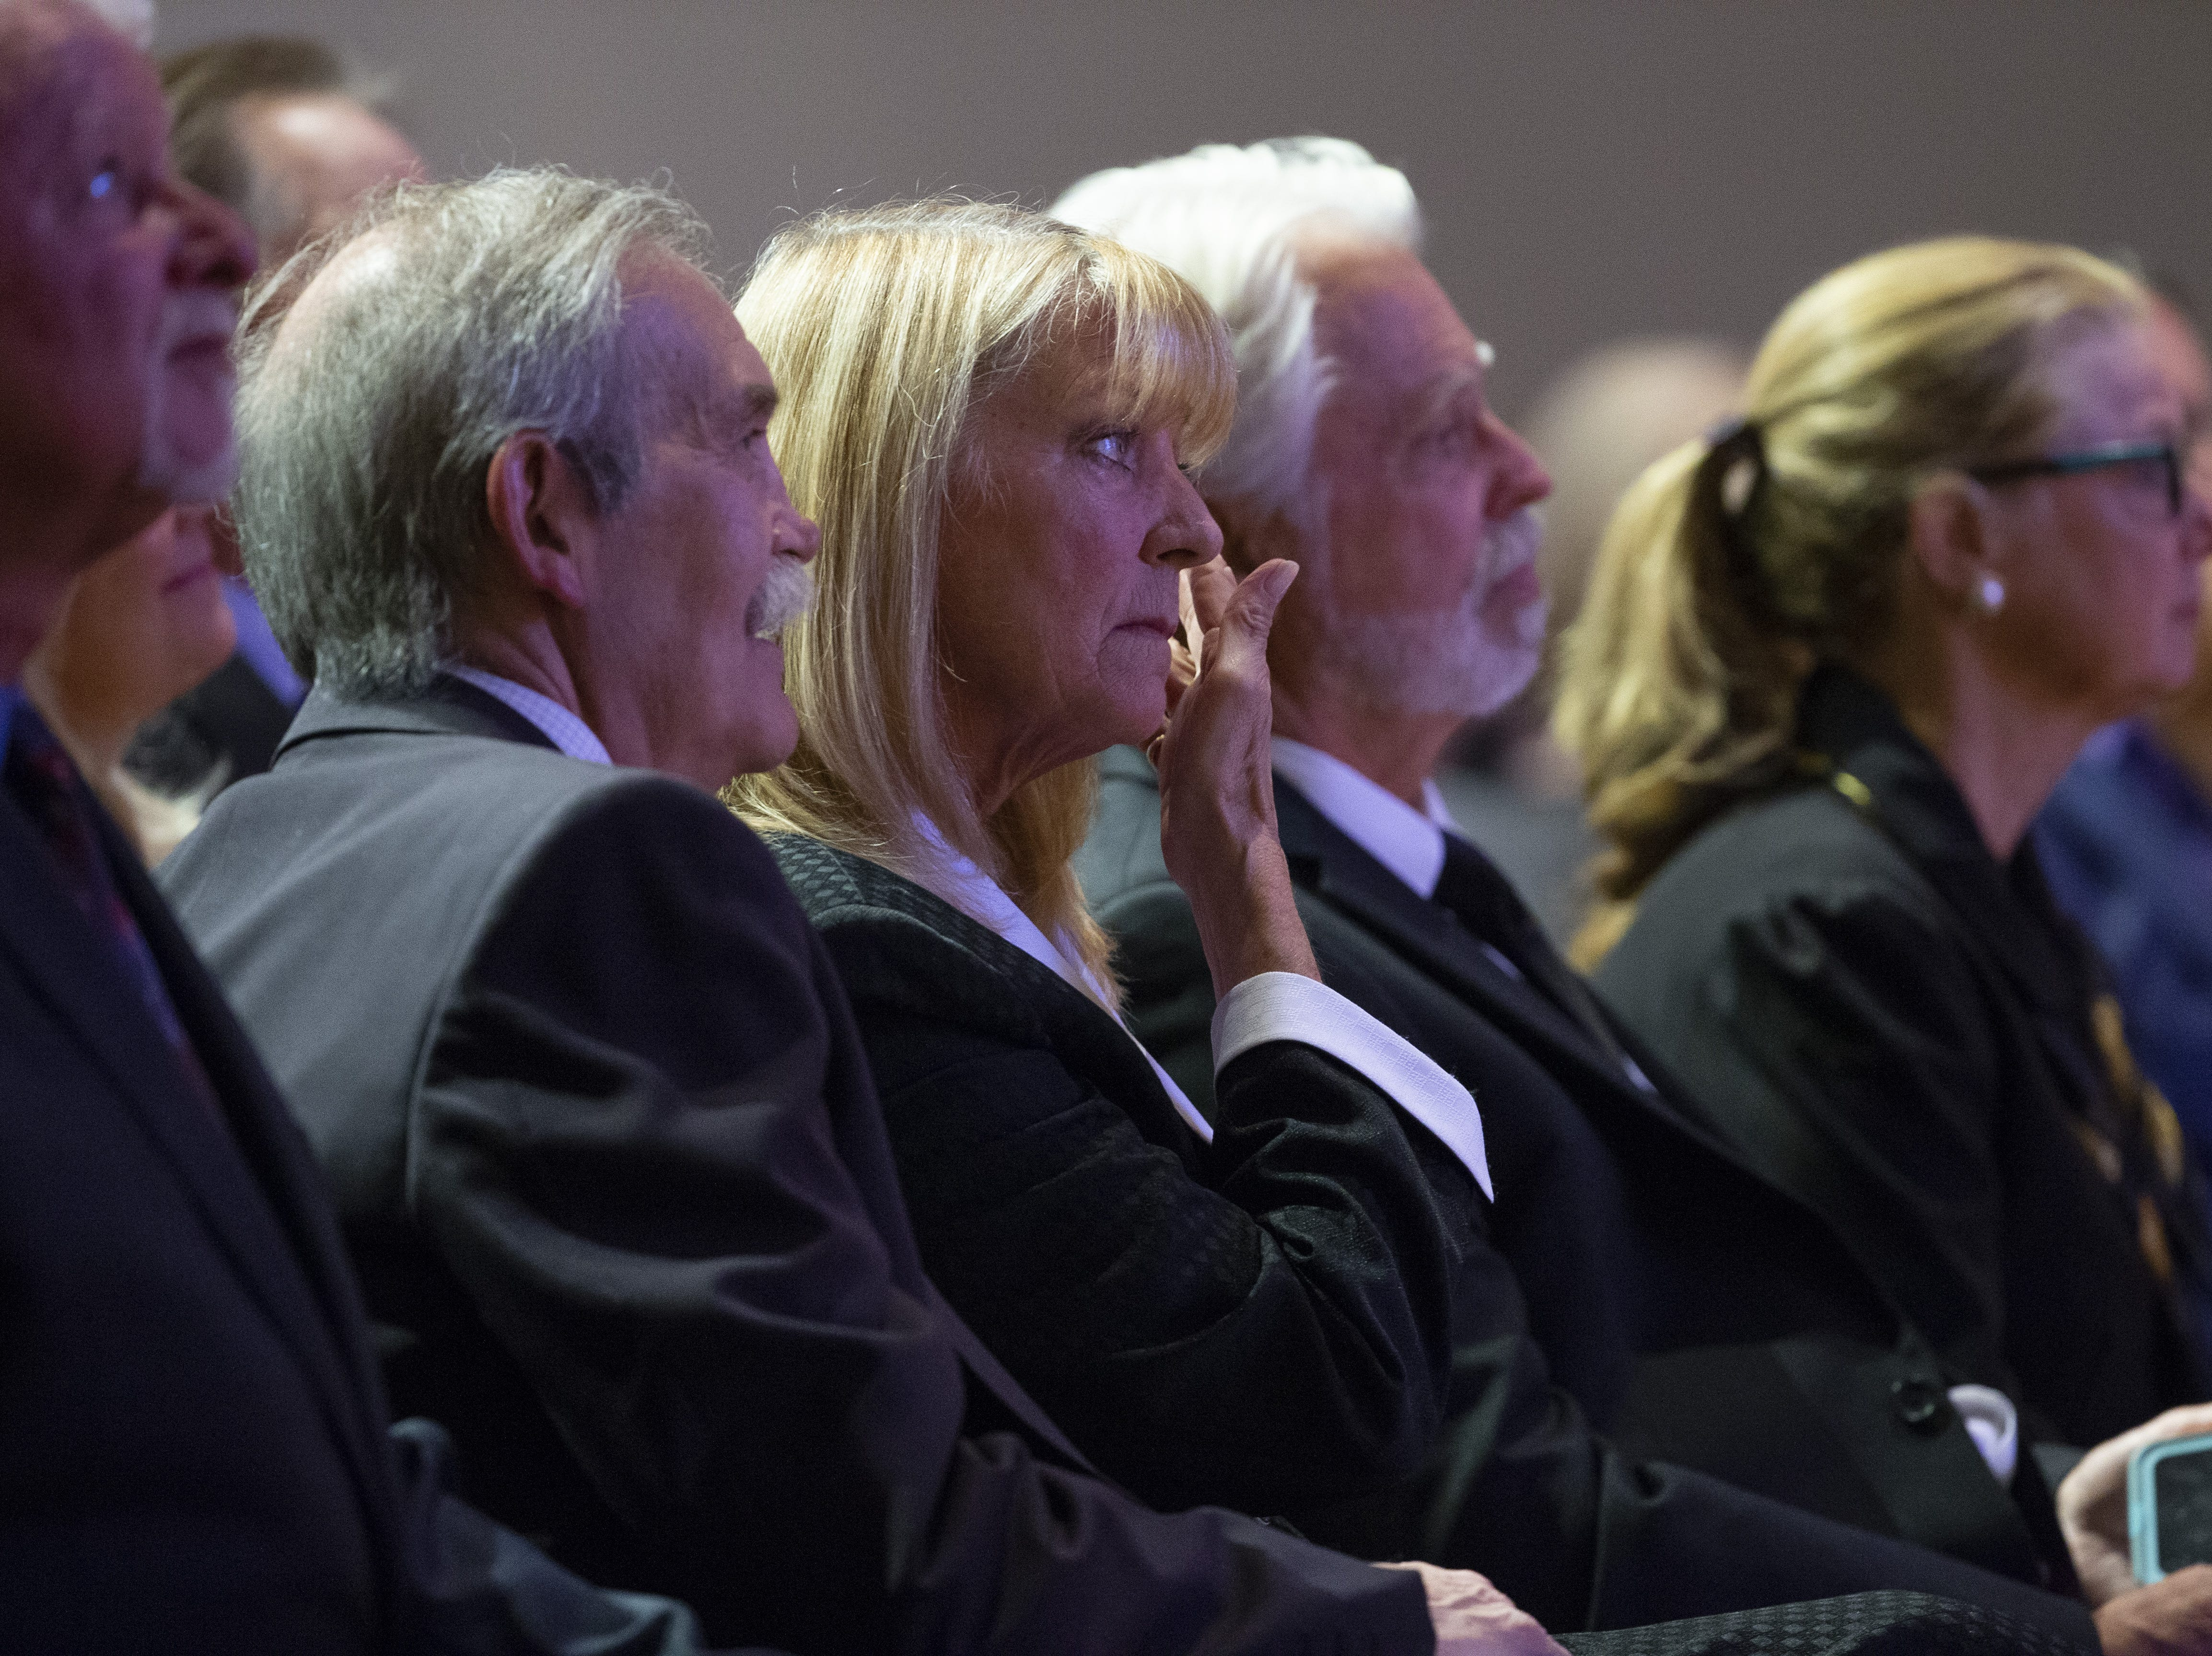 Connie People listens during memorial services for her mother, Carolyn Warner, at First United Methodist Church in on October 25, 2018. Warner was the 15th Superintendent of Public Education for the state of Arizona and nearly became the state's first female governor in 1986.